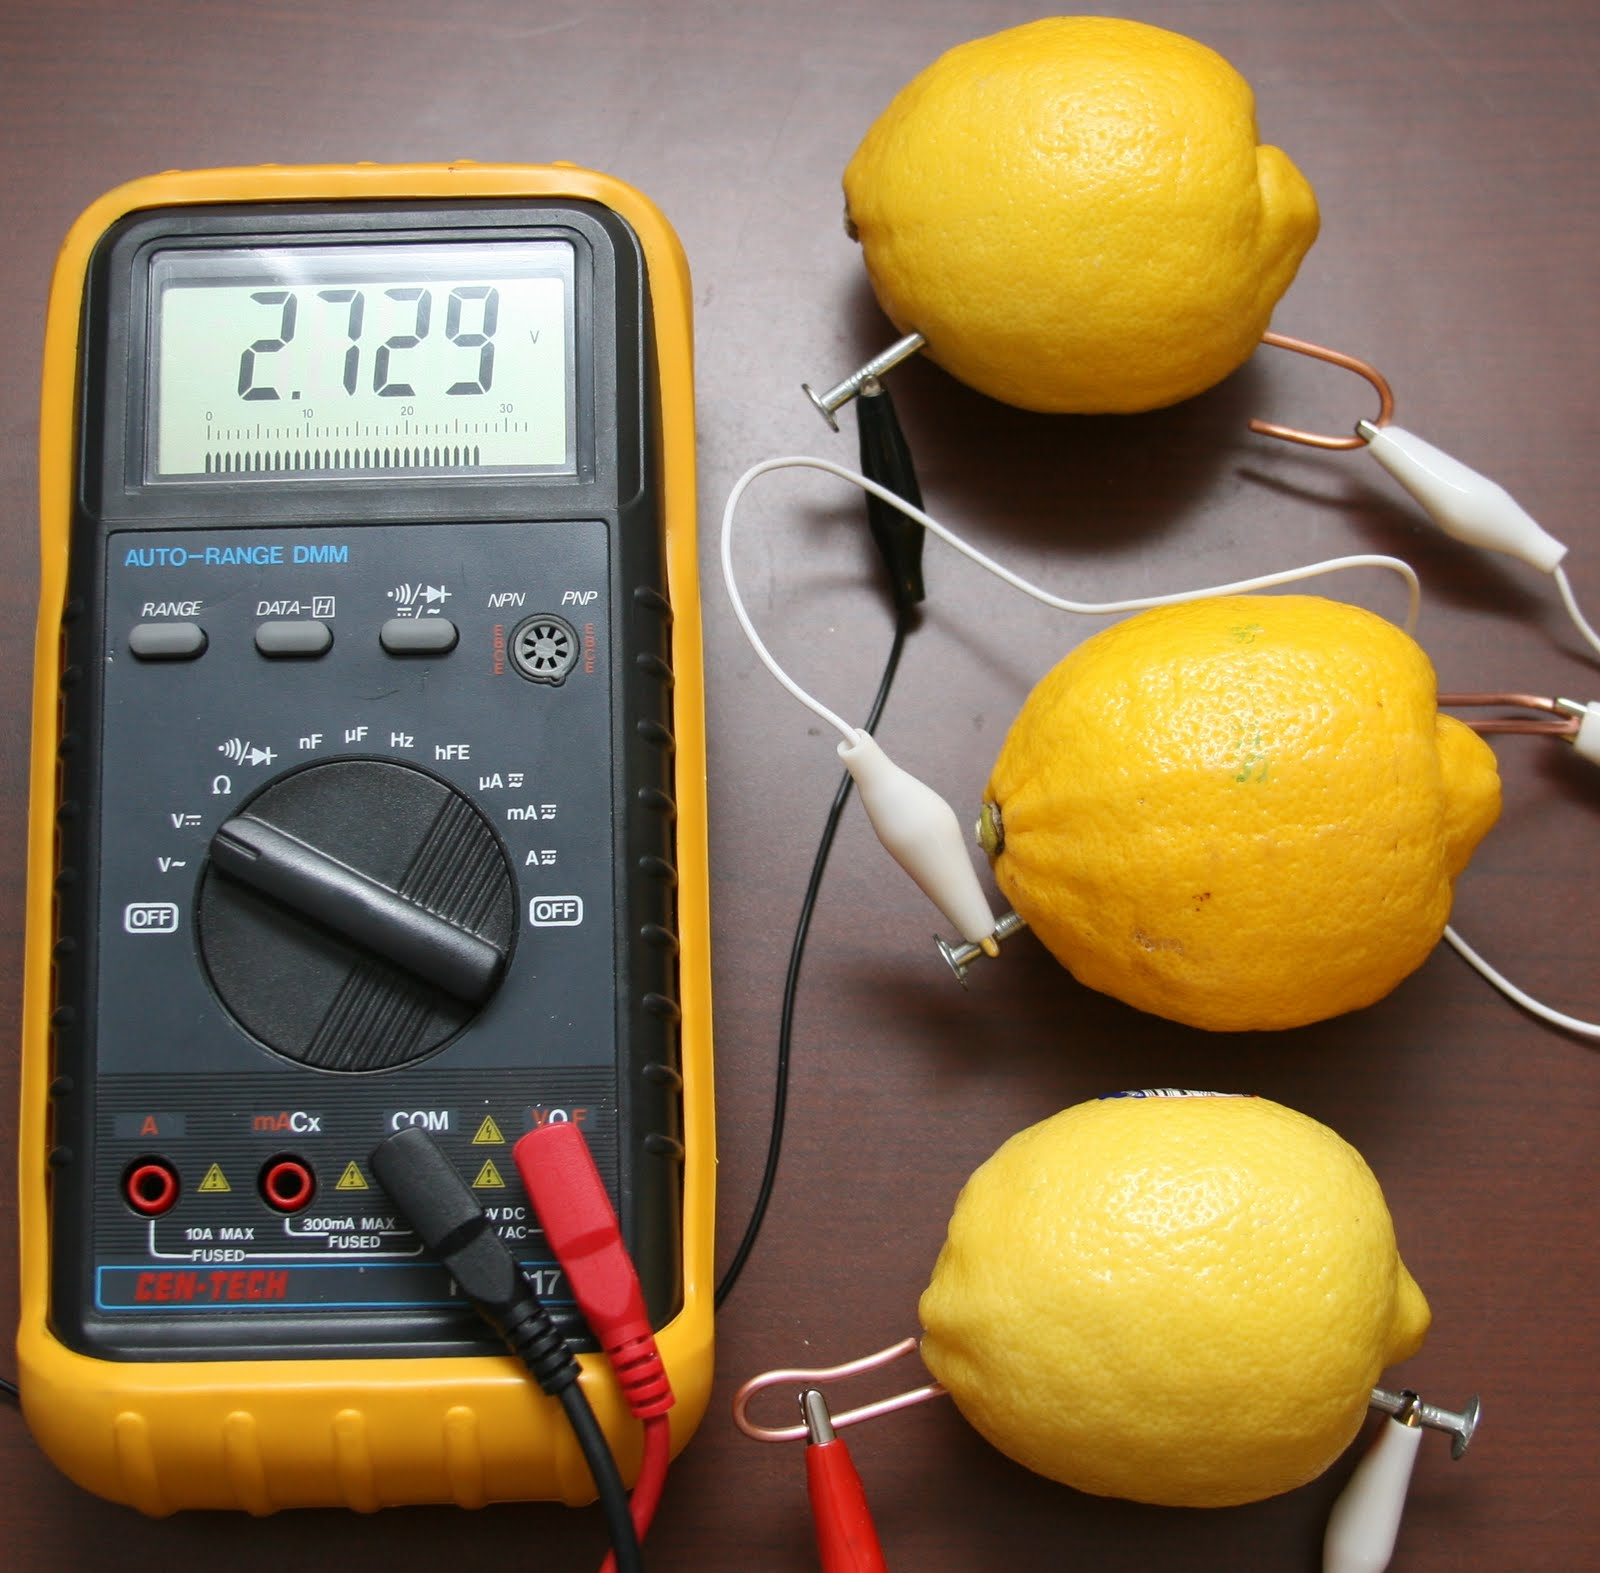 One Circuit Has A Voltage Of 15v A Lamp And A Voltmeter Are